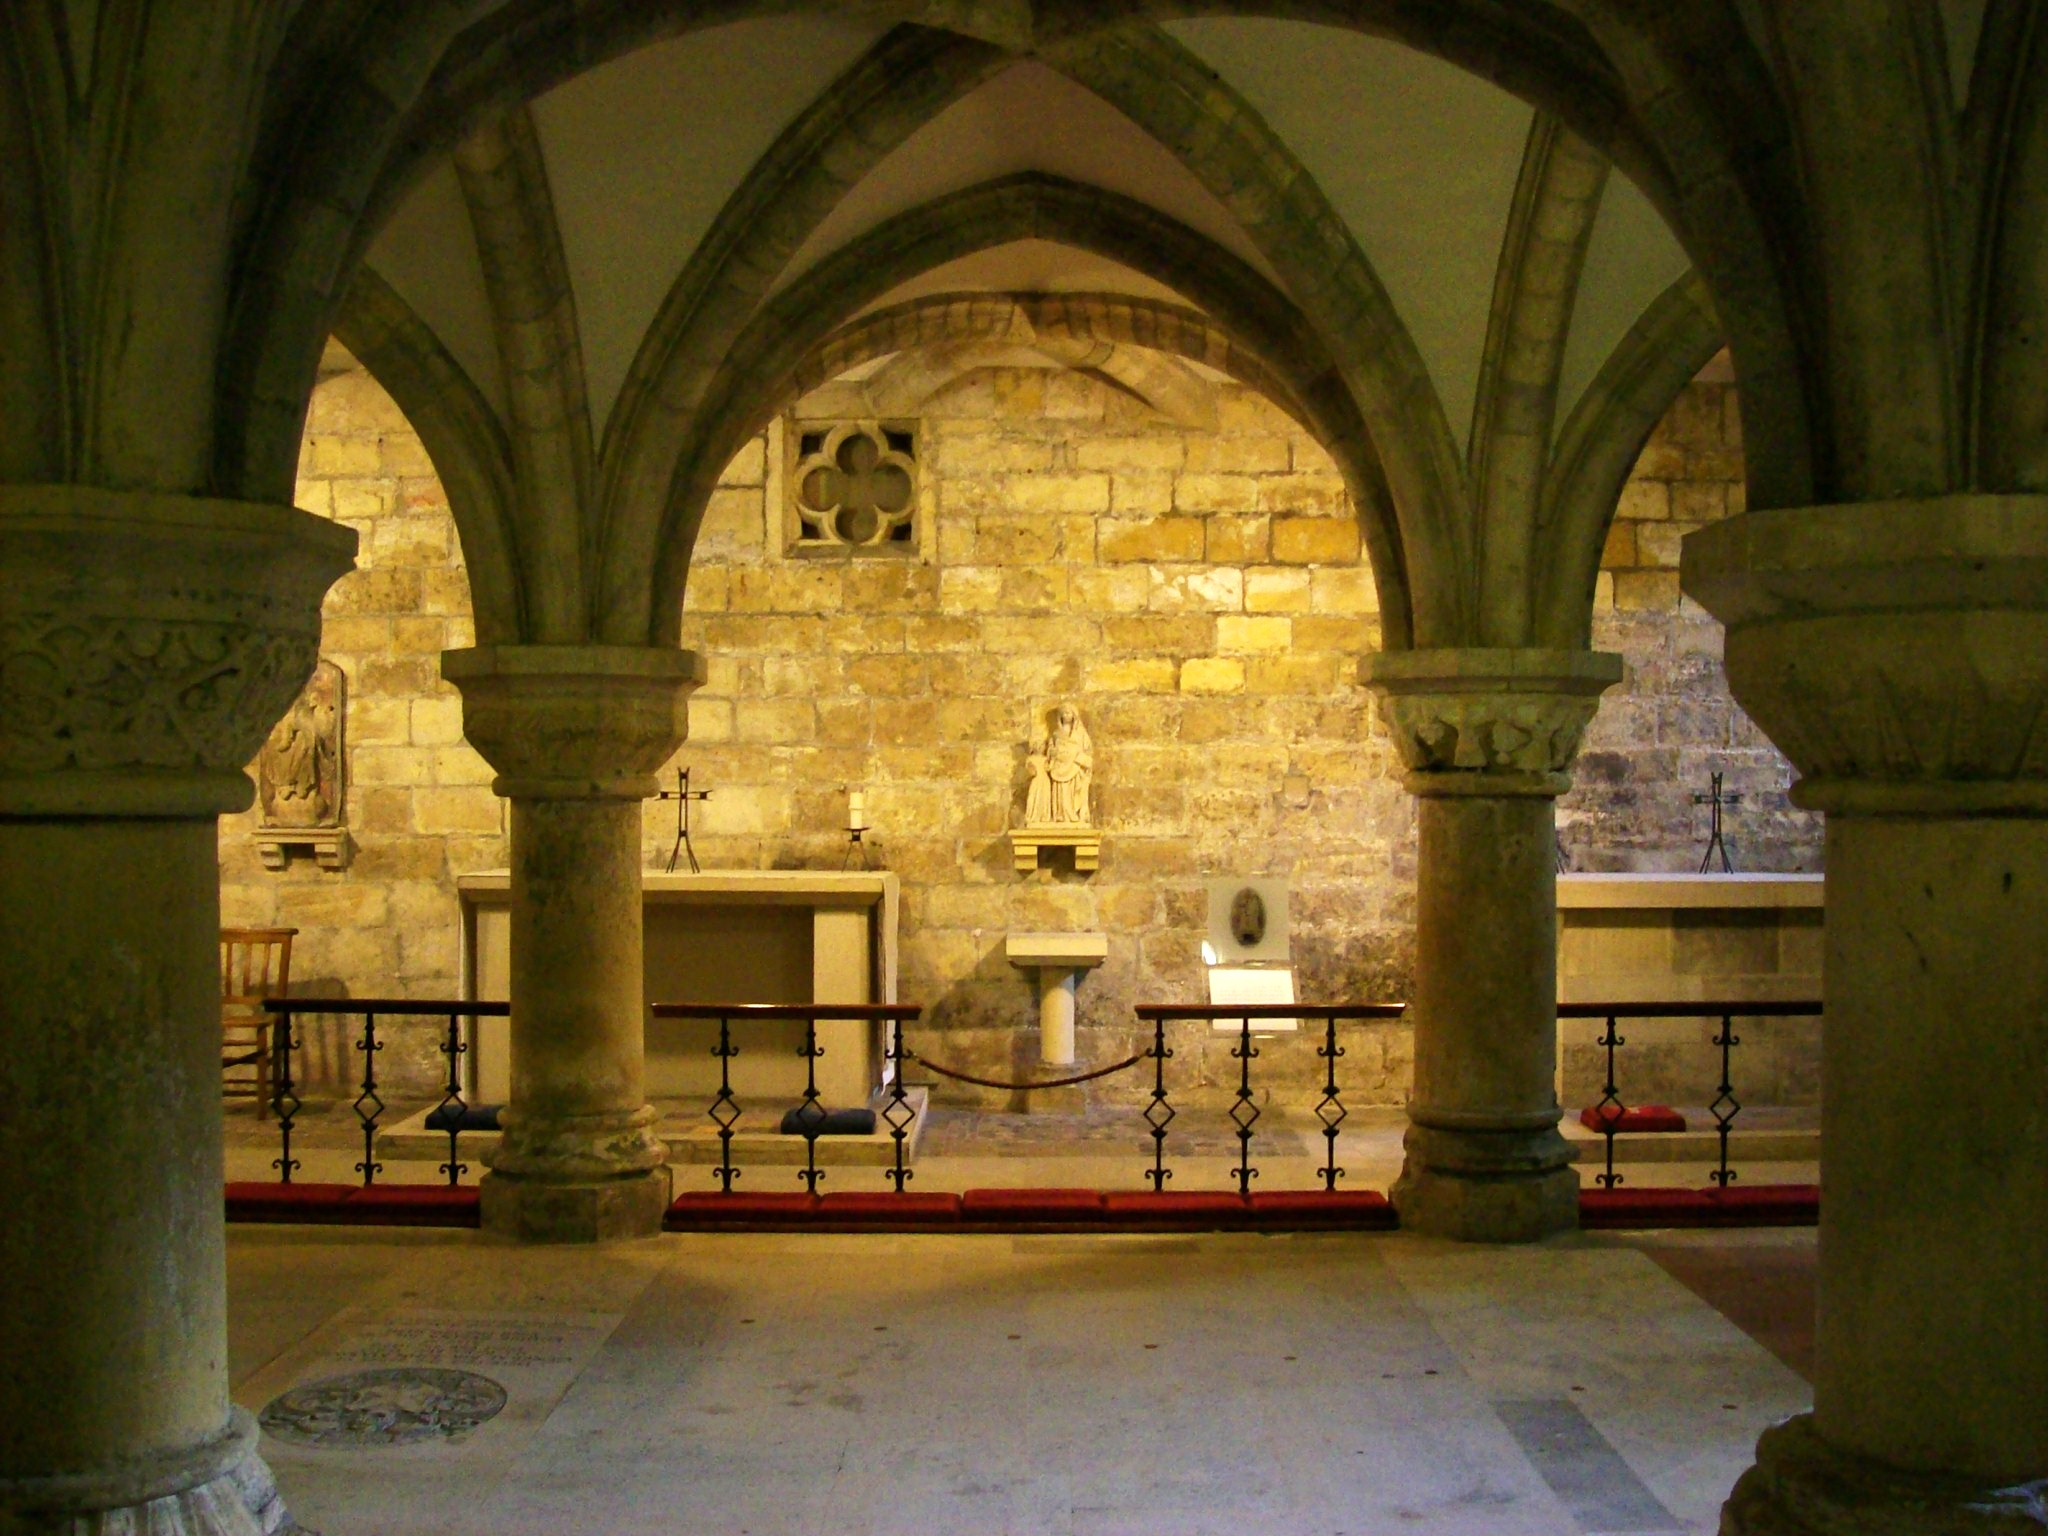 The_Crypt,_York_Minster_2